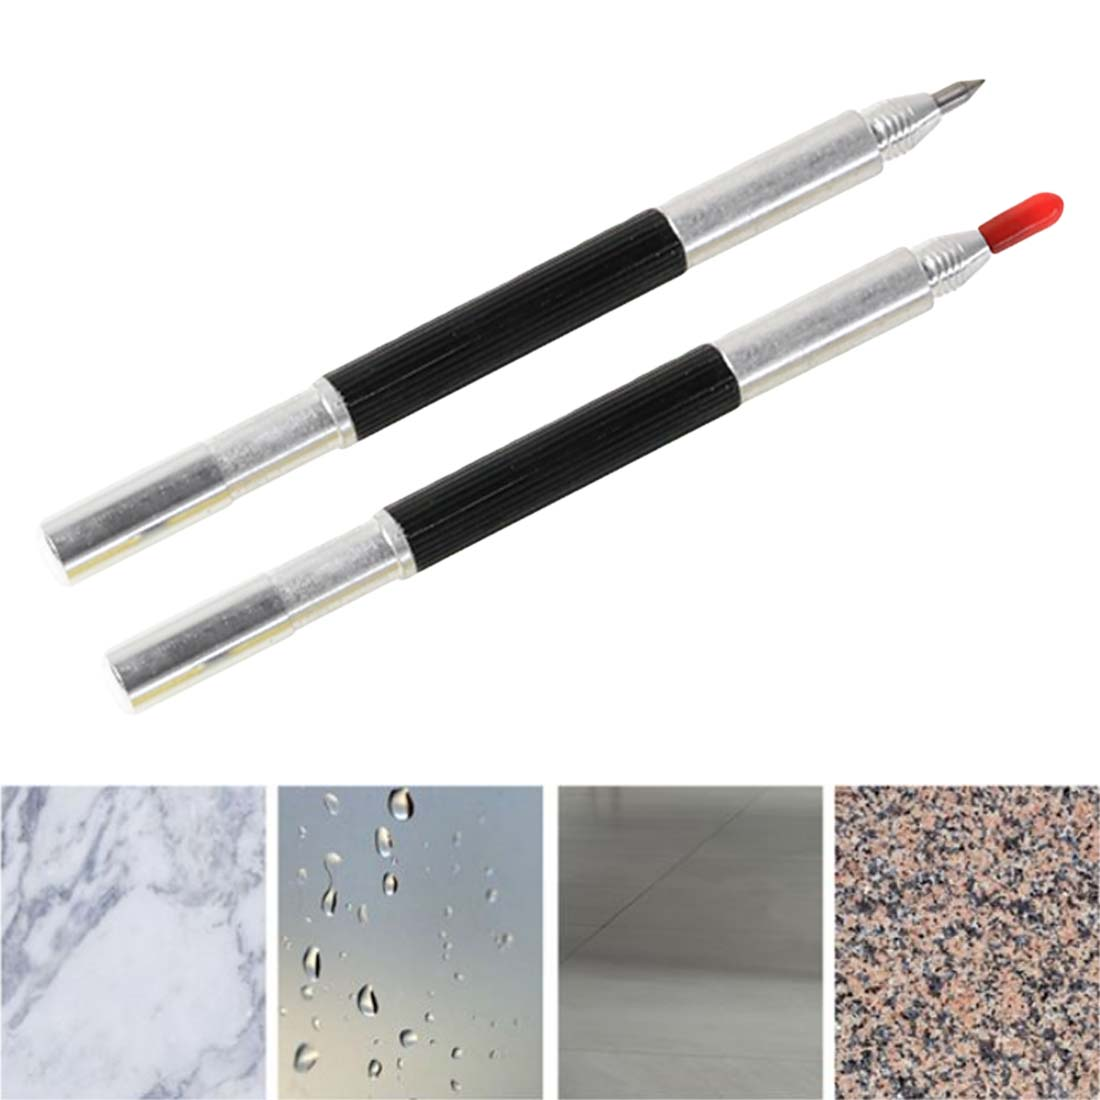 Double Head Glass Tile Cutter Pen 130mm Carbide Scriber Hard Metal Tile Cutting Machine Lettering Pen Glass knife